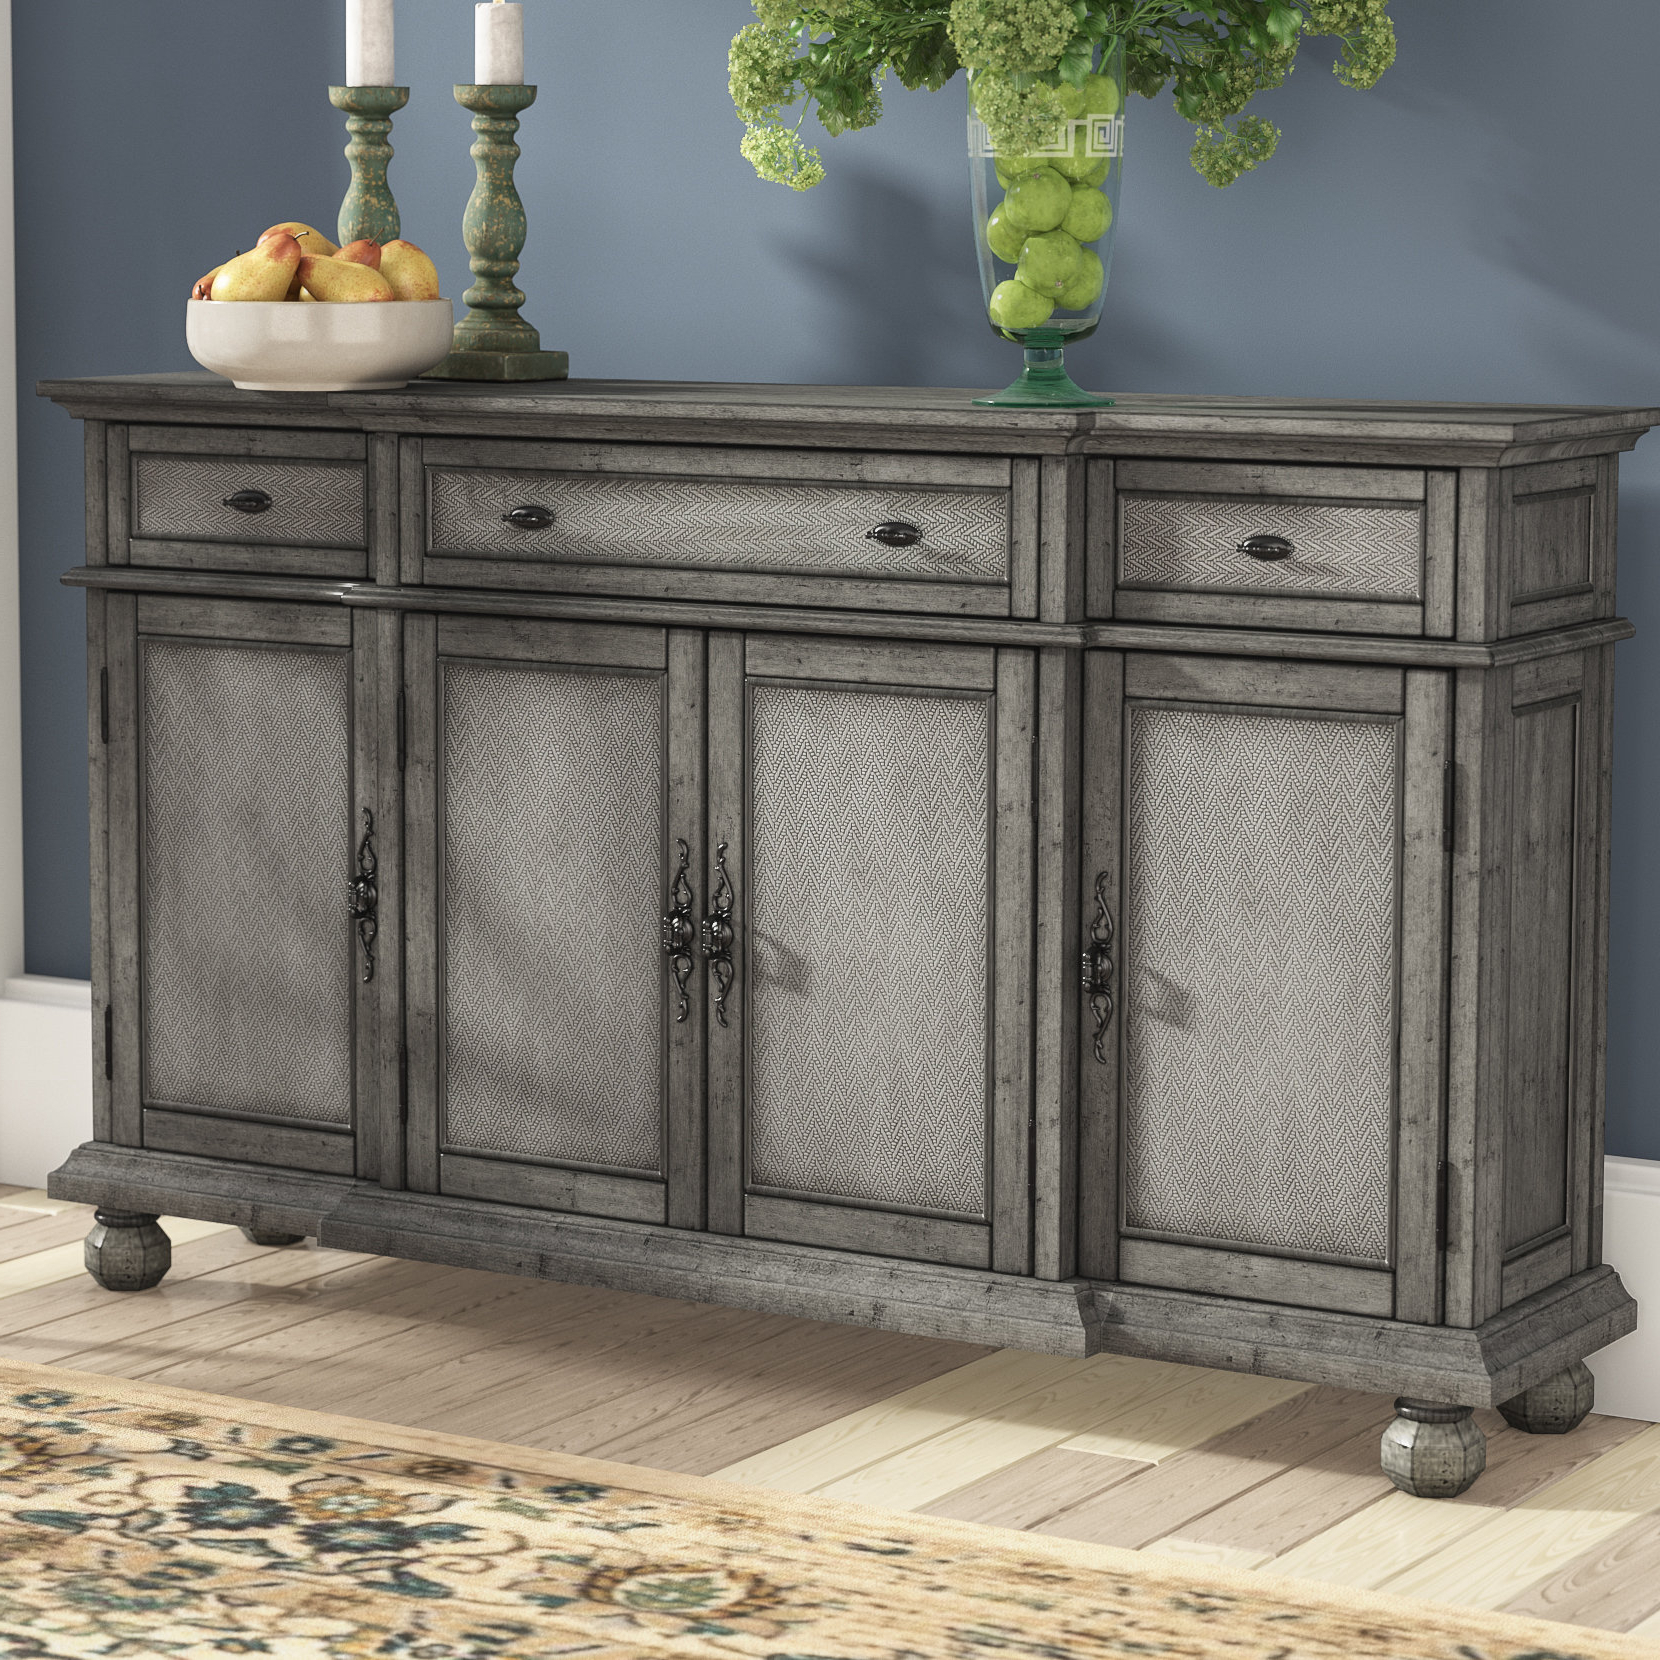 Wayfair With Senda Credenzas (Gallery 4 of 20)